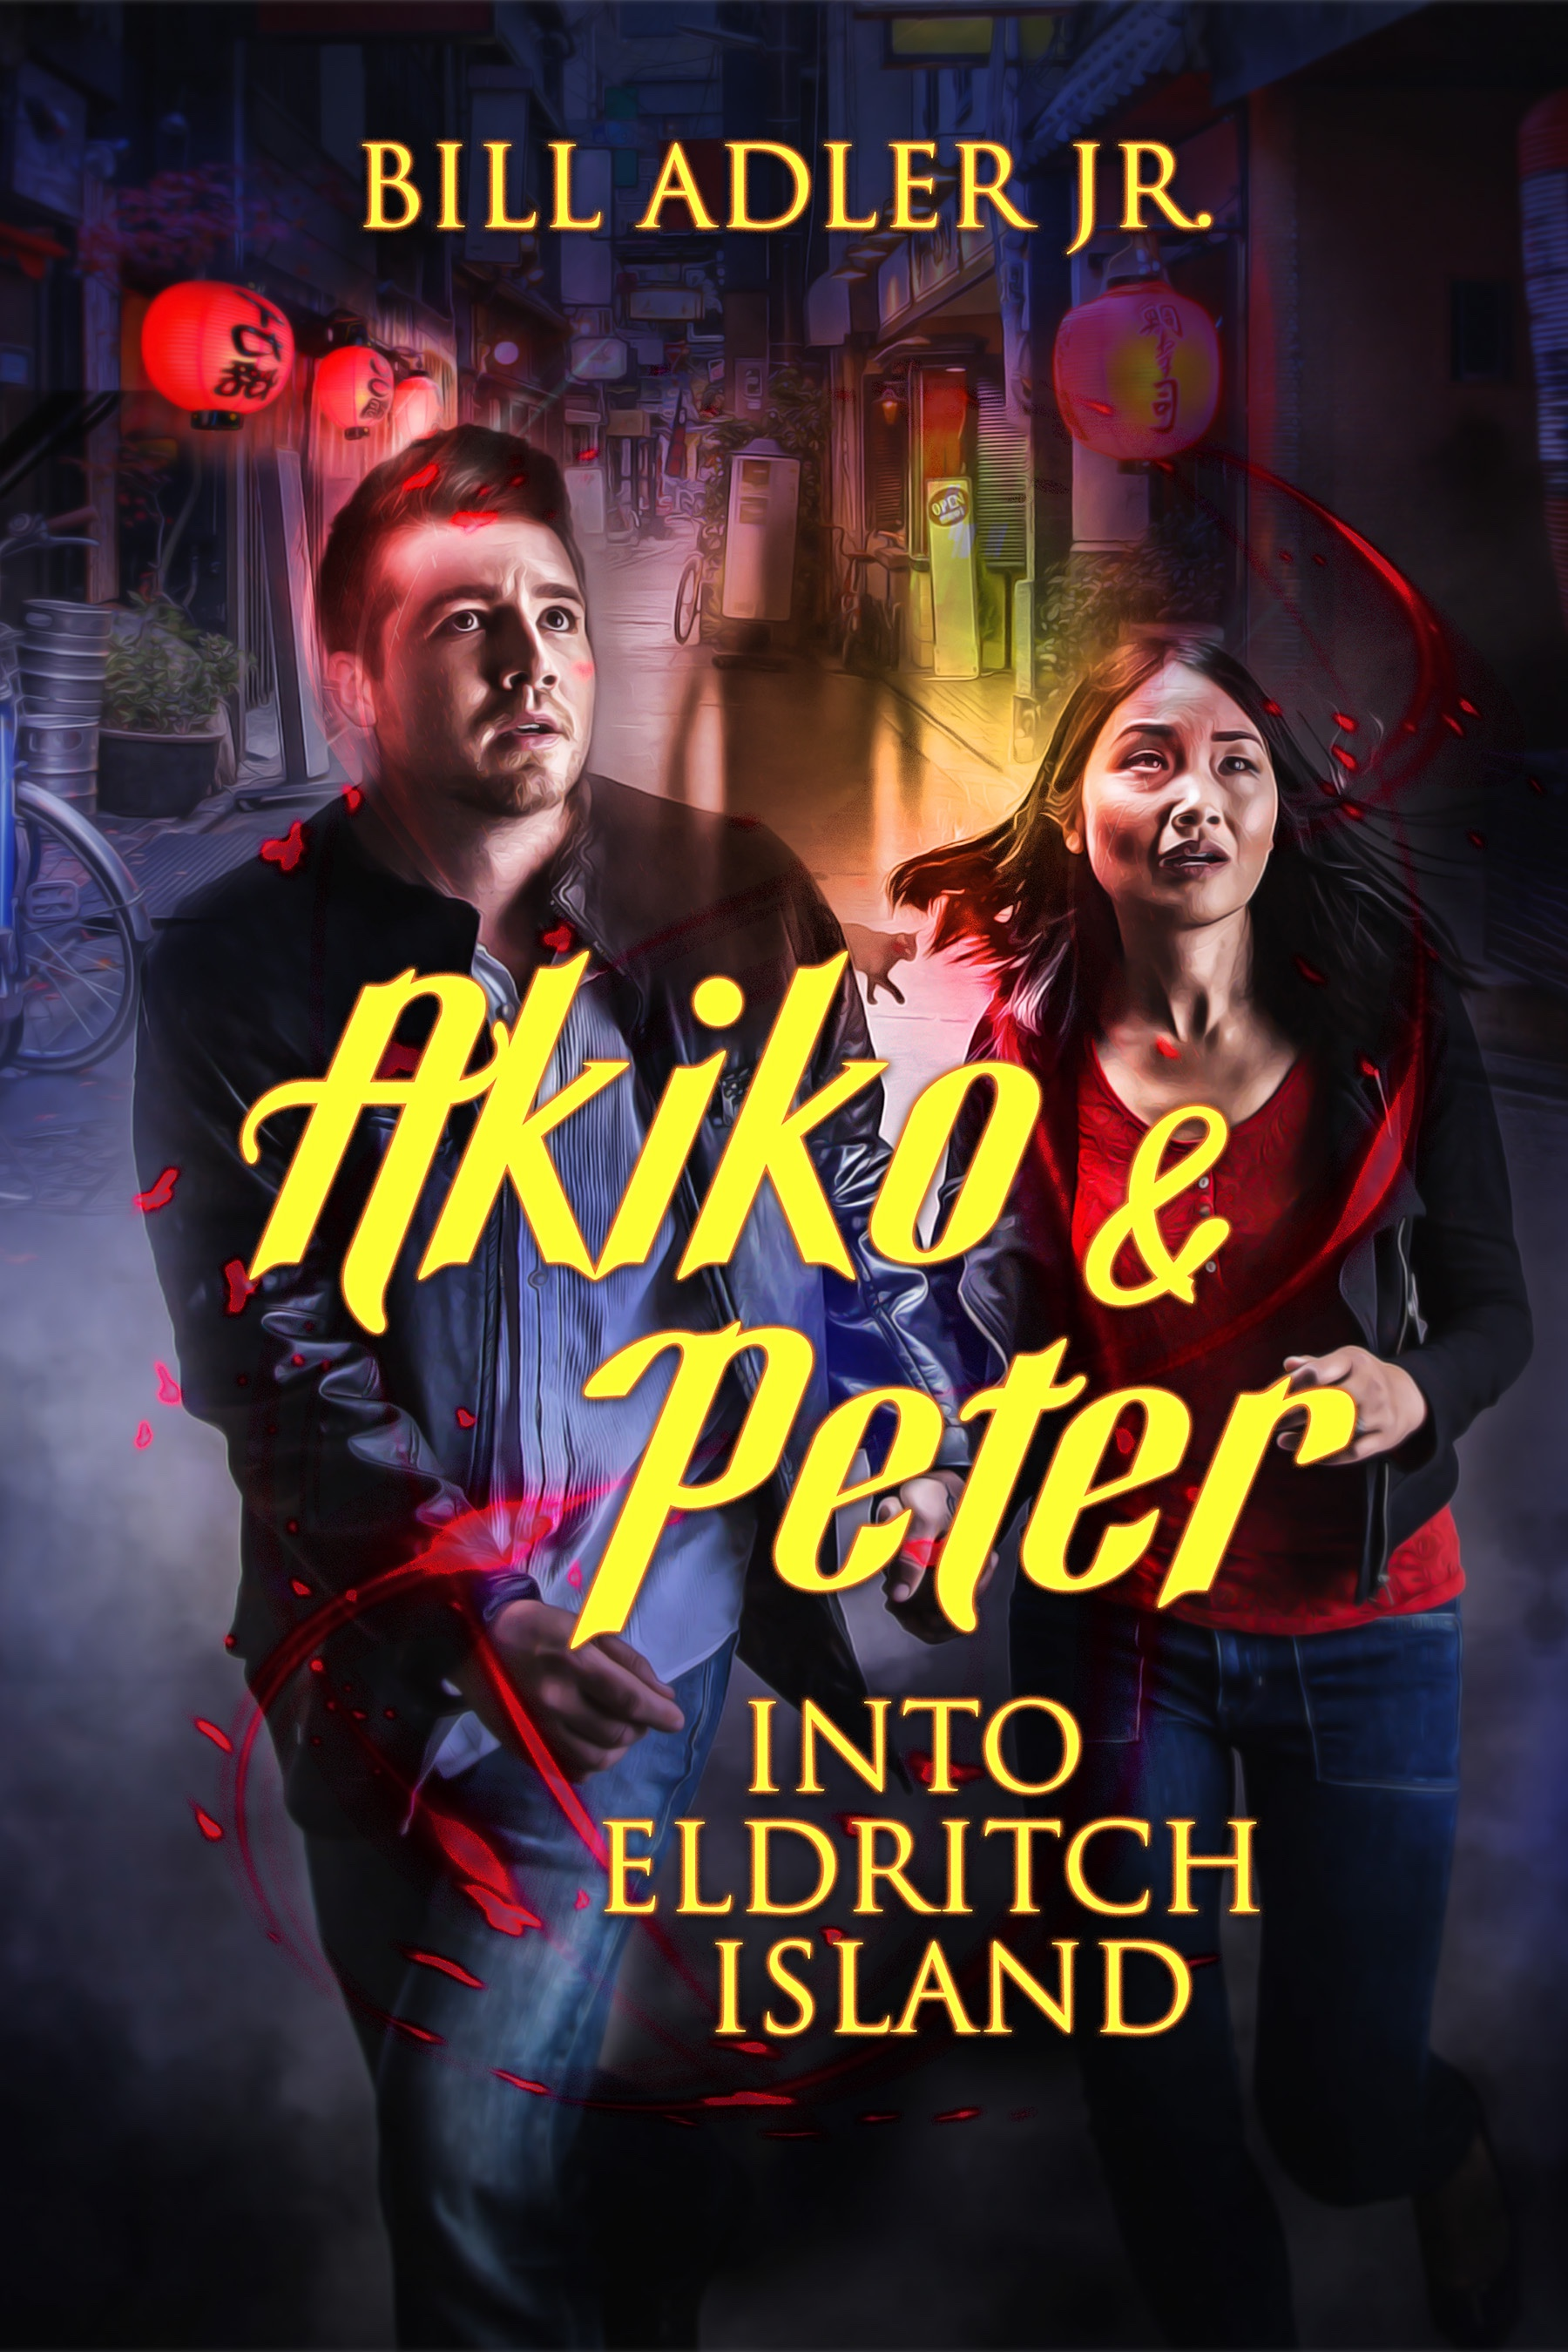 AkikoandPeterFinal-FJM_Kindle_1800x2700